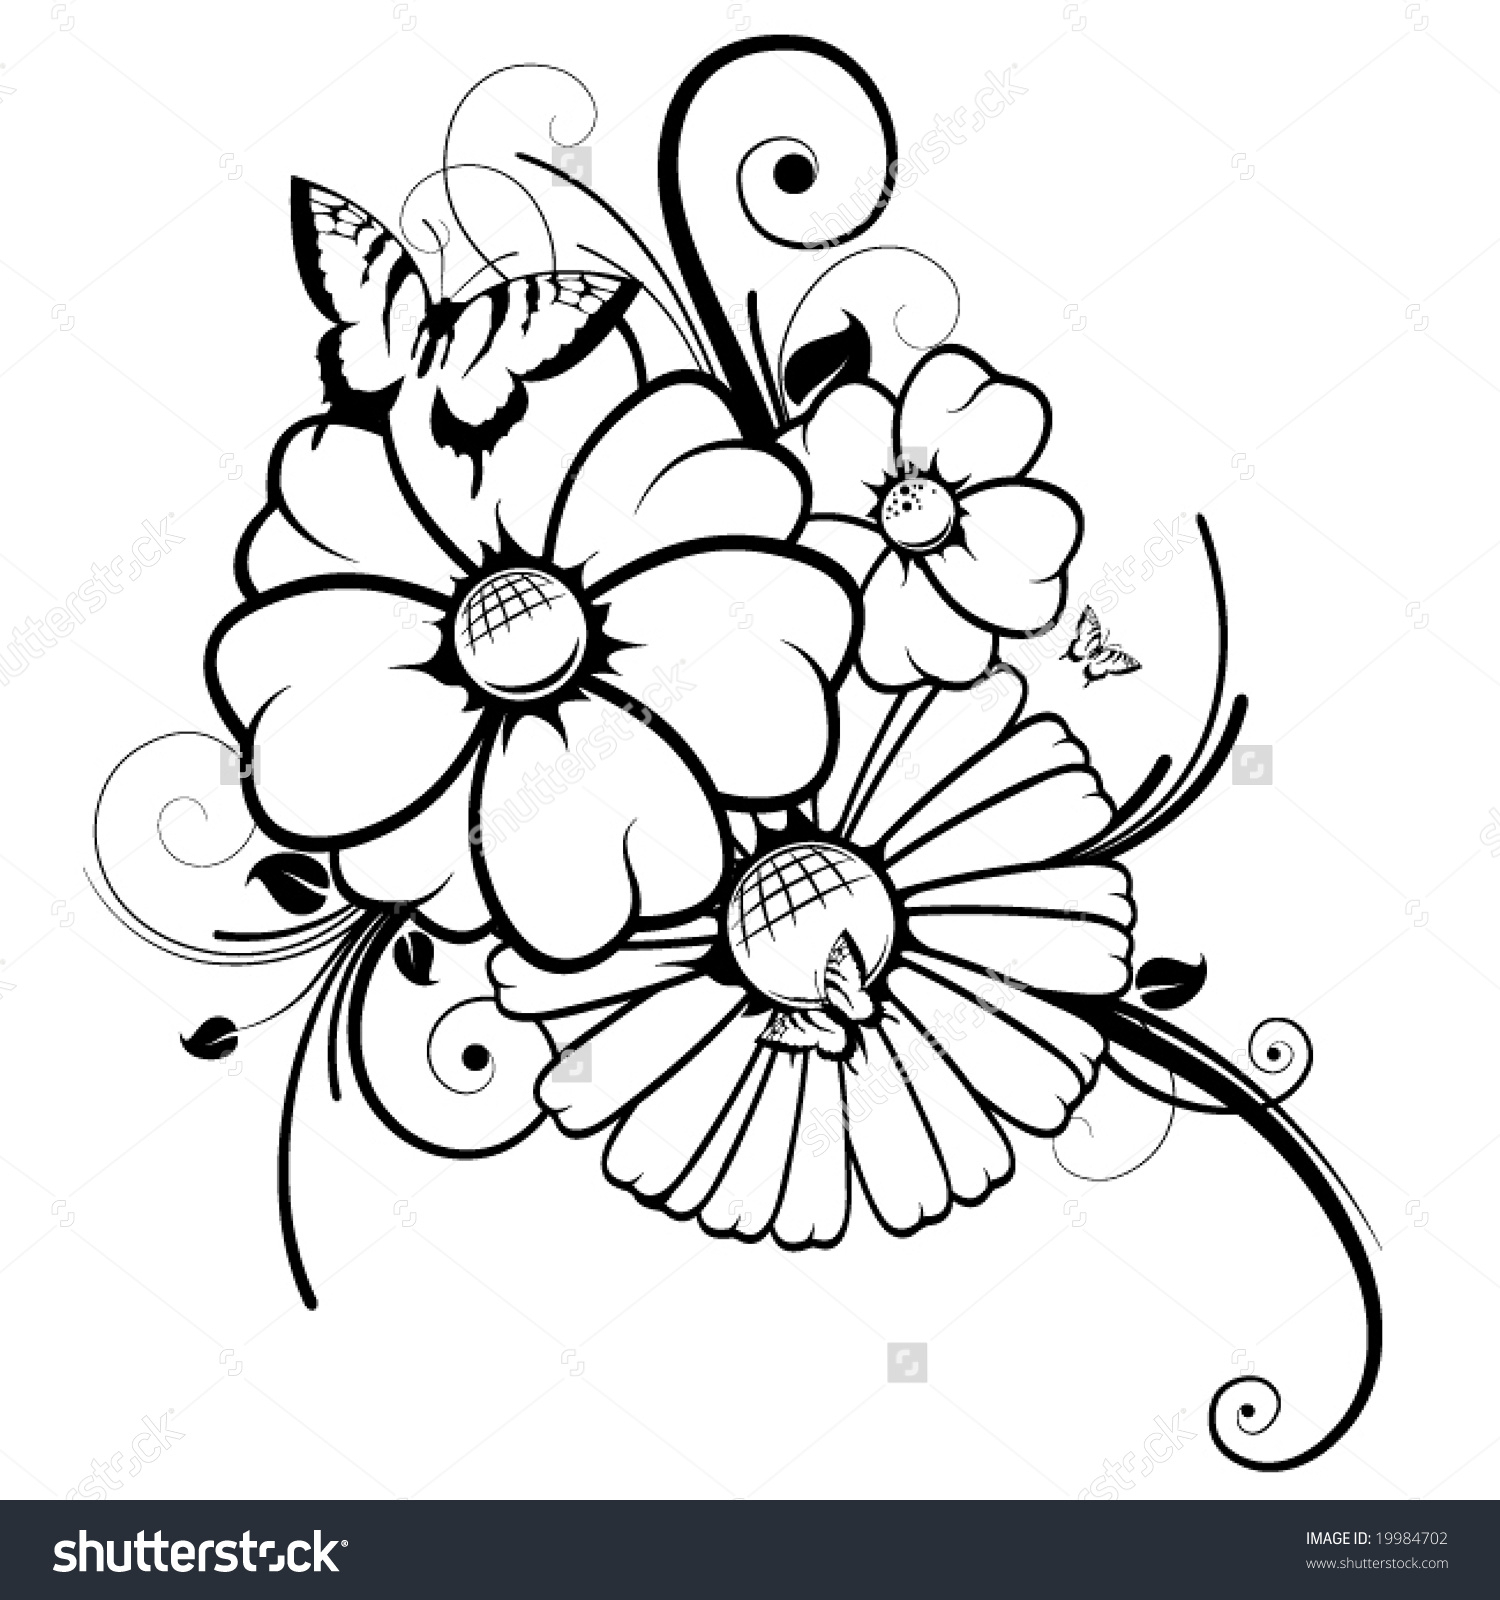 1500x1600 Drawing Flowers And Butterflies How To Draw A Butterfly Sucking